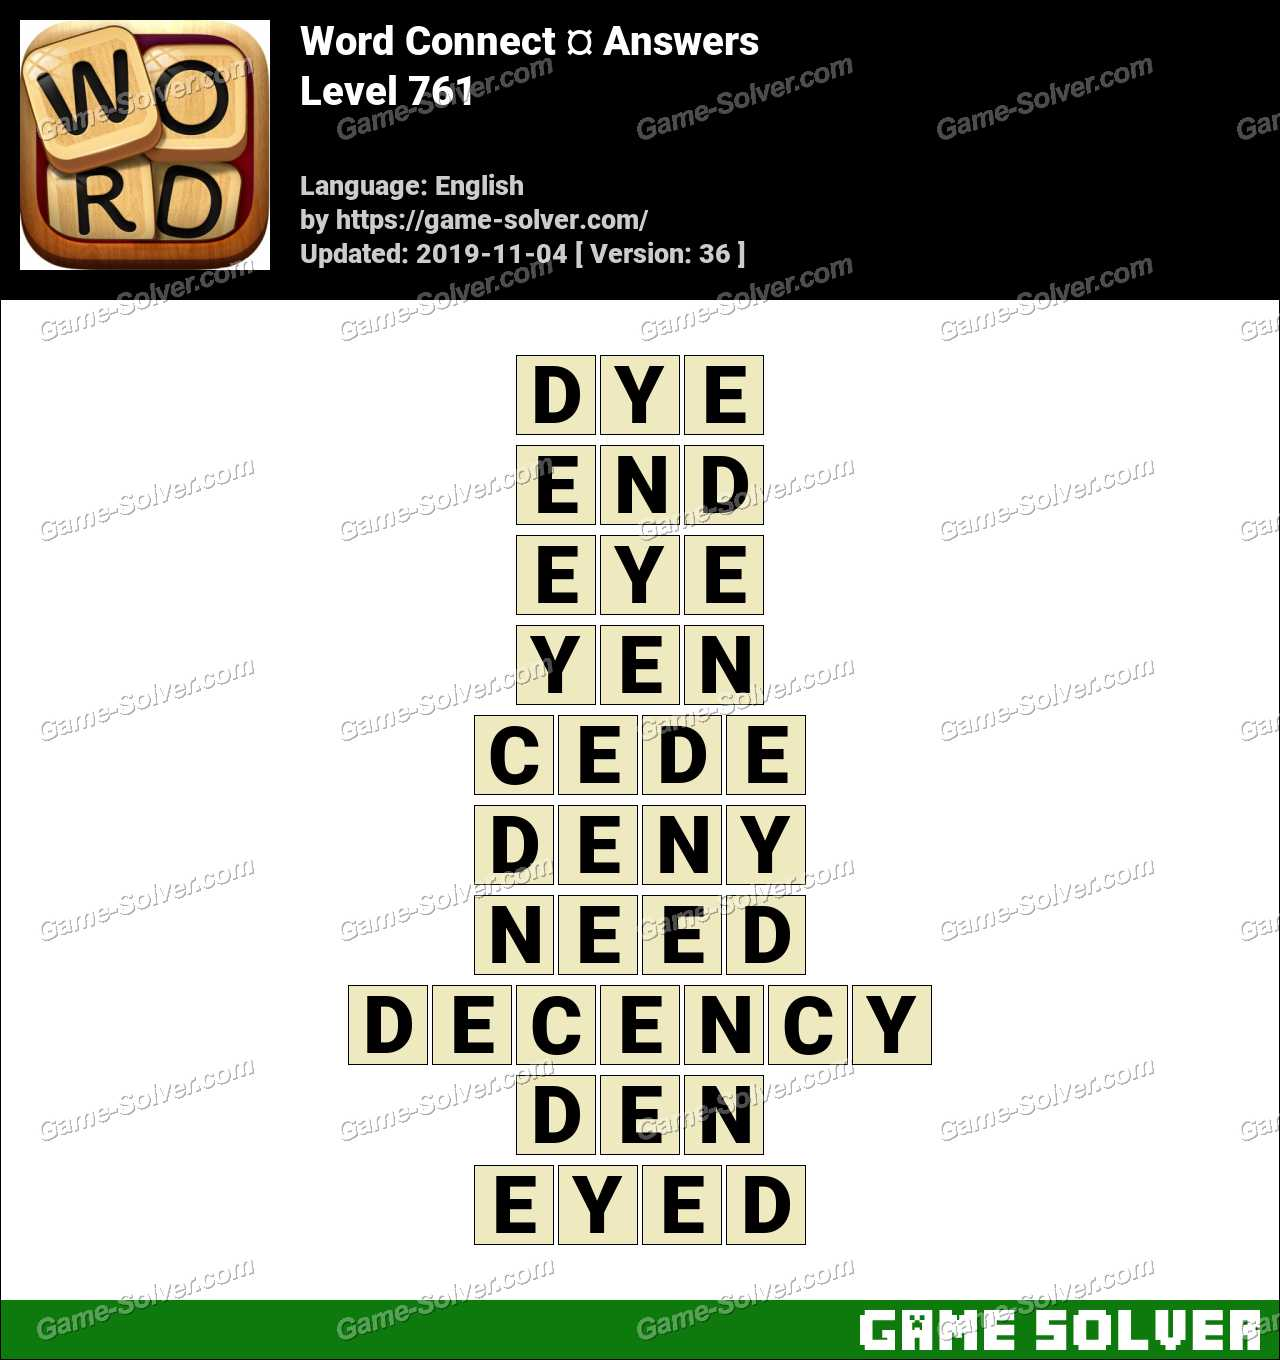 Word Connect Level 761 Answers